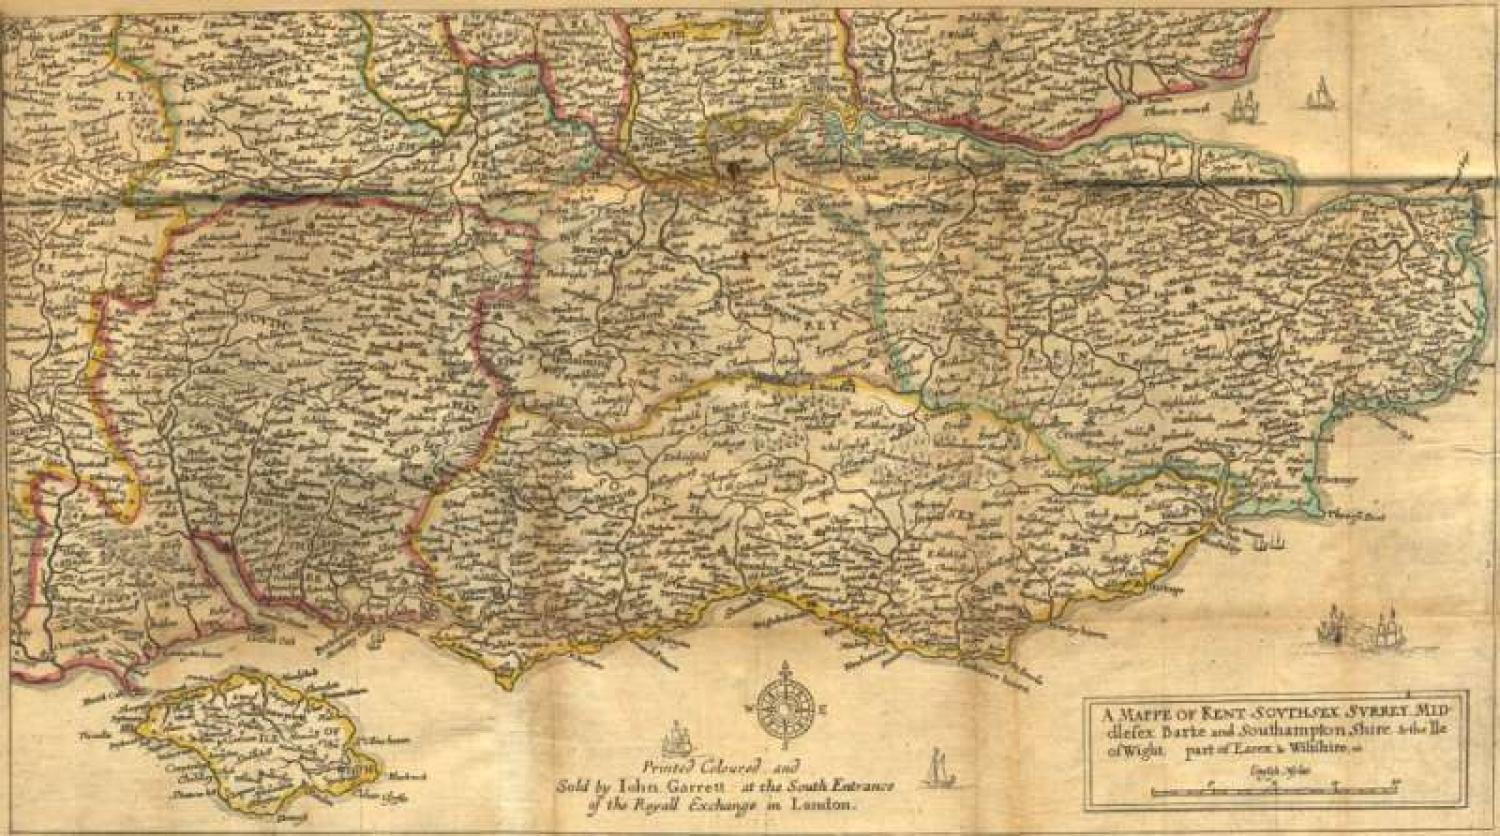 Hollar - (Set of 2) A Mappe of Kent, Southsex